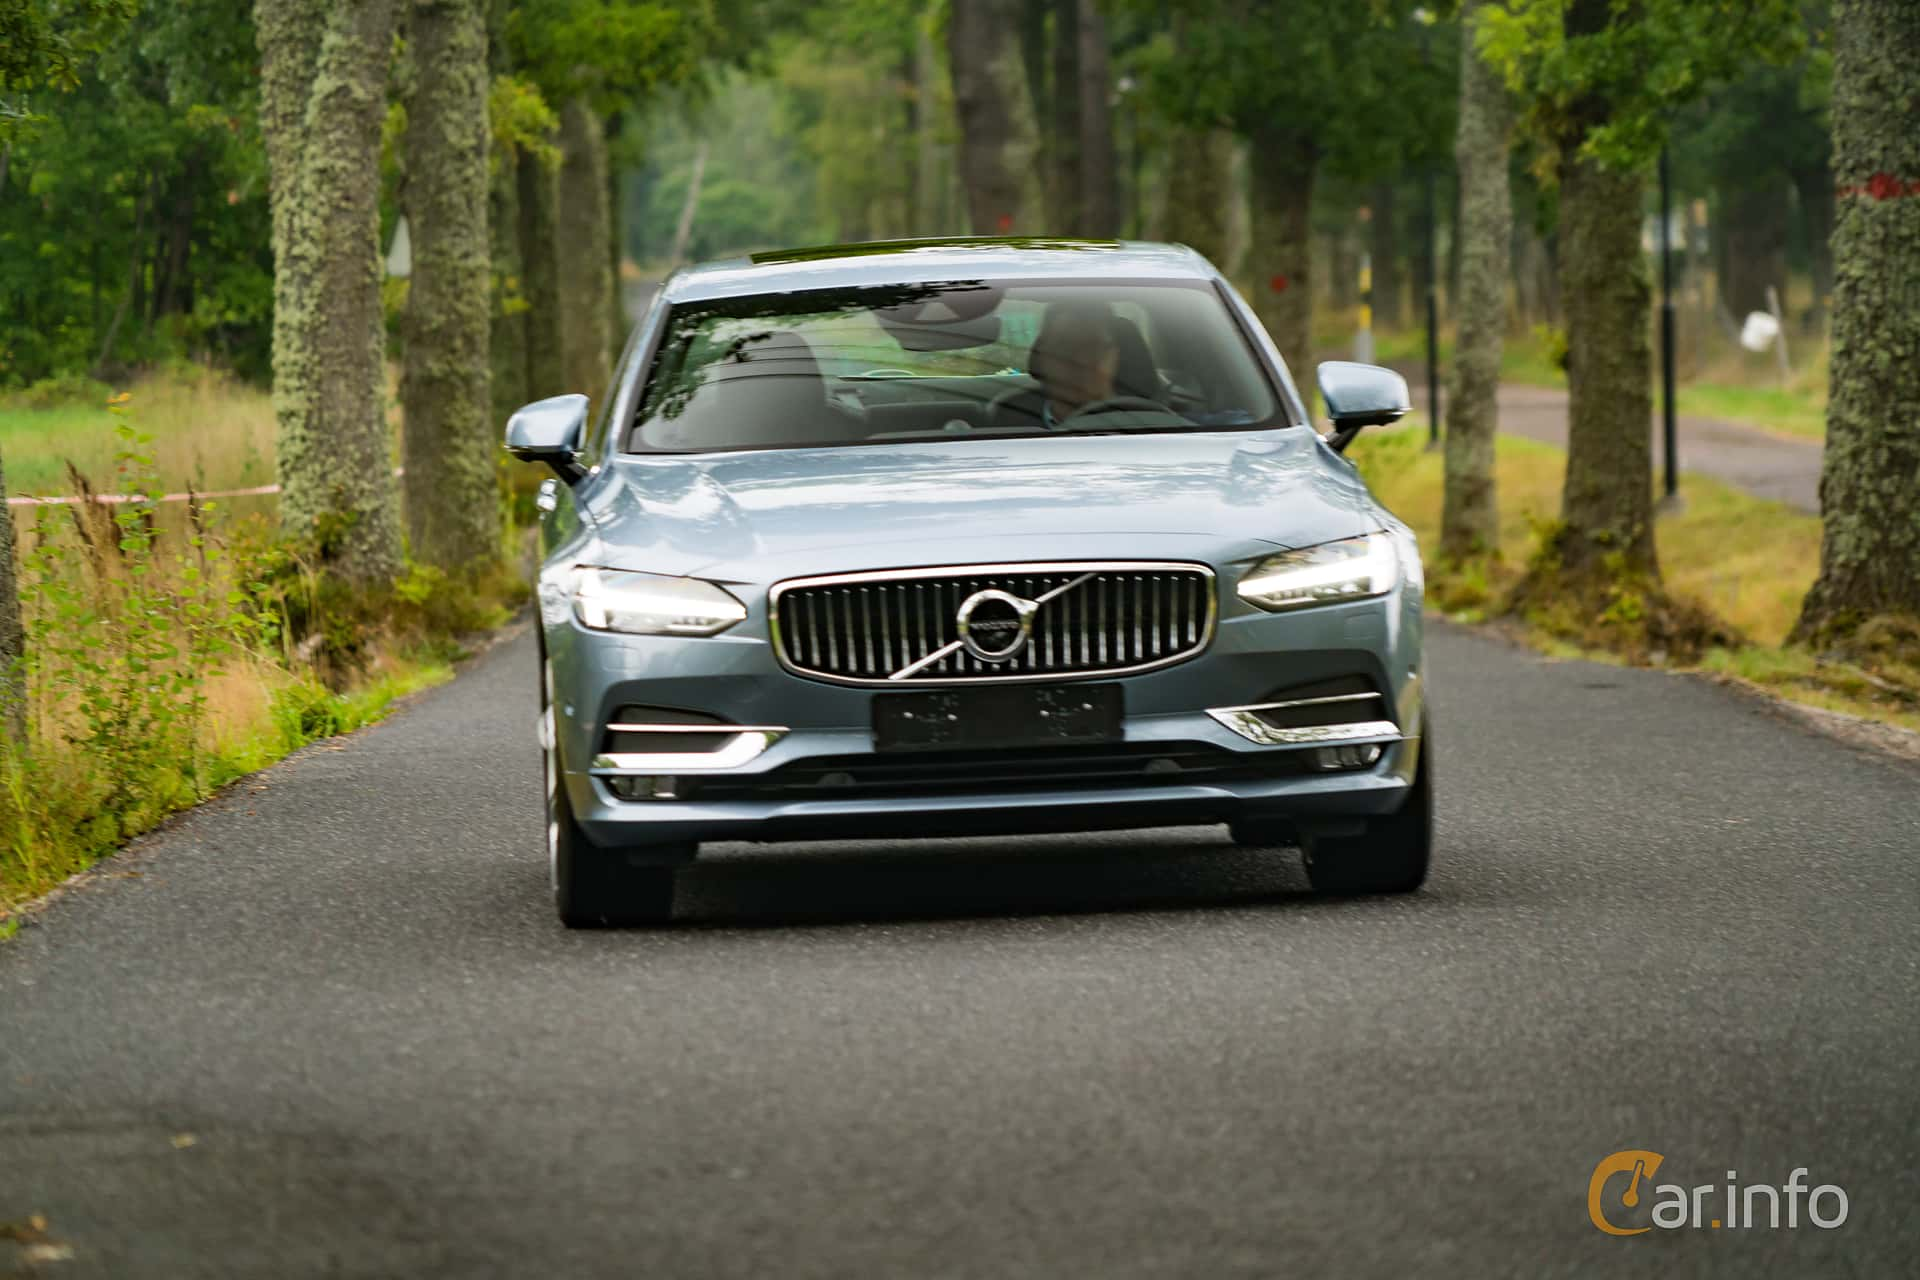 Volvo S90 2017 by marcusliedholm